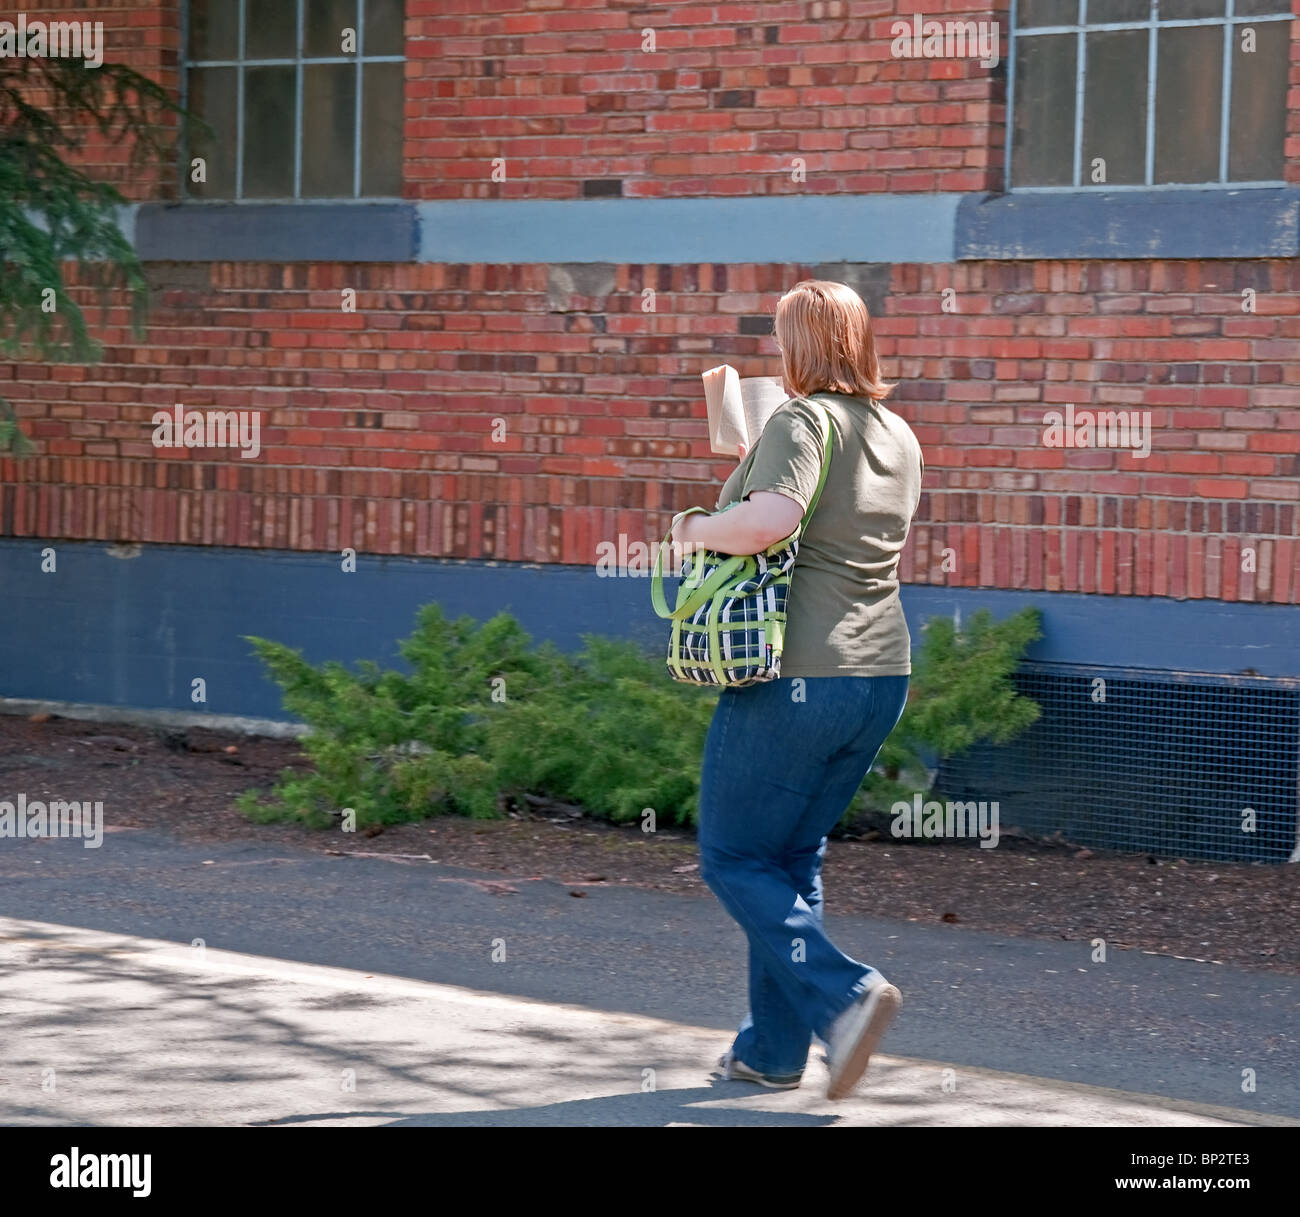 This woman is an avid reader as she reads a book while walking along a pathway against a beautiful old brick building. Stock Photo